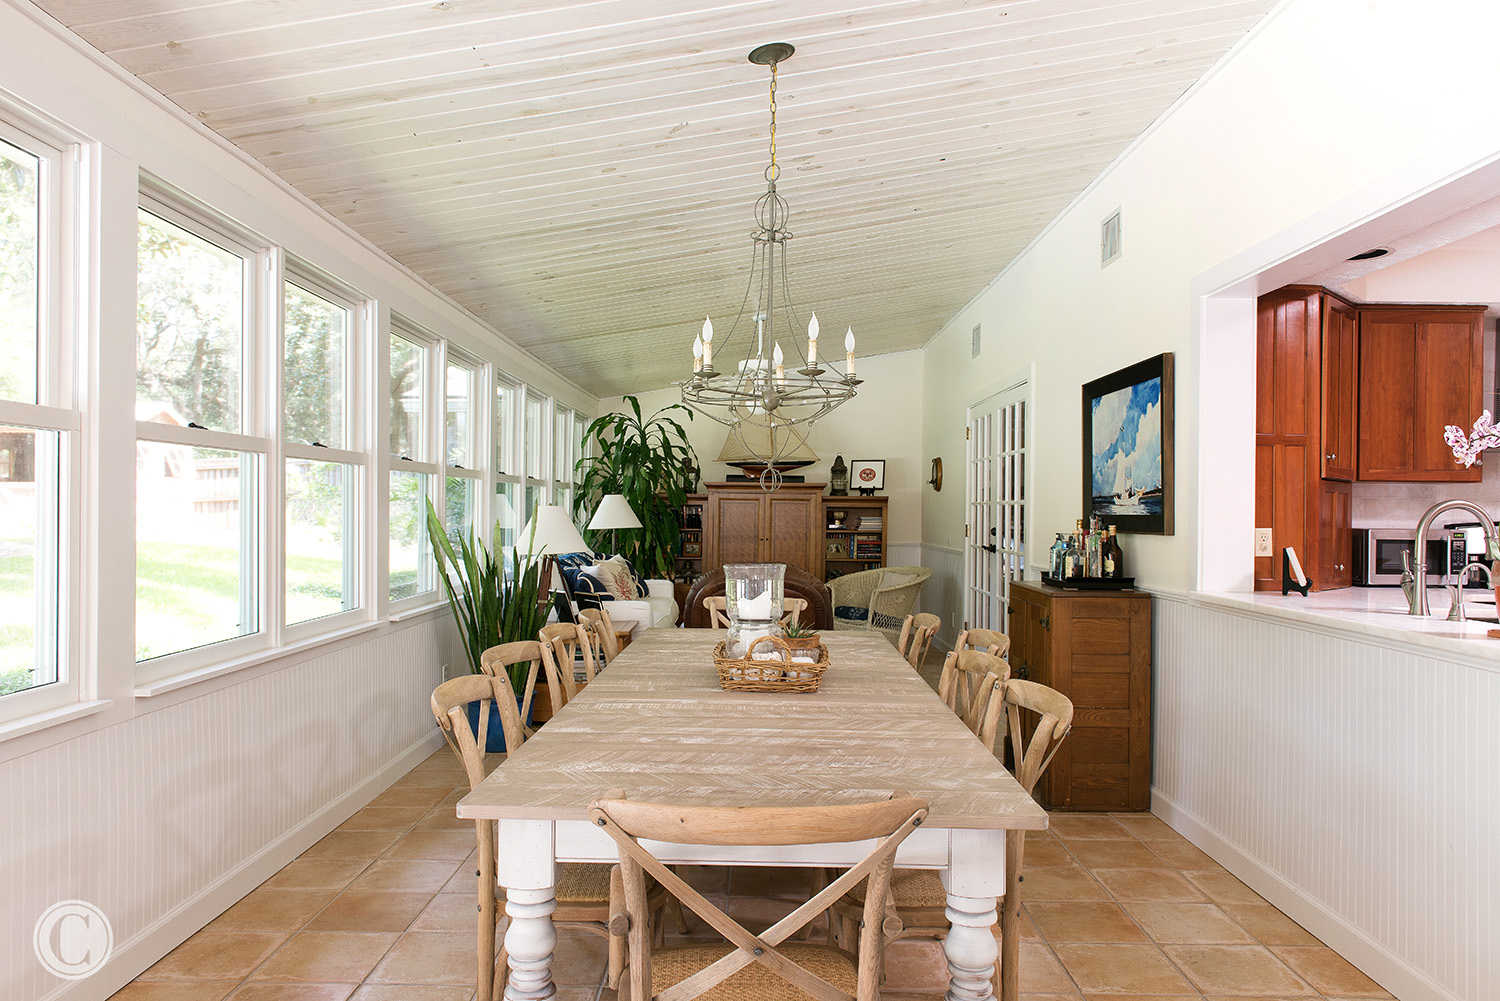 White-washed Wood Tongue and Groove Ceiling, Kitchen pass-through, New wood windows, Atlantic Beach, Florida Home Renovation, ©Agnes Lopez Photography